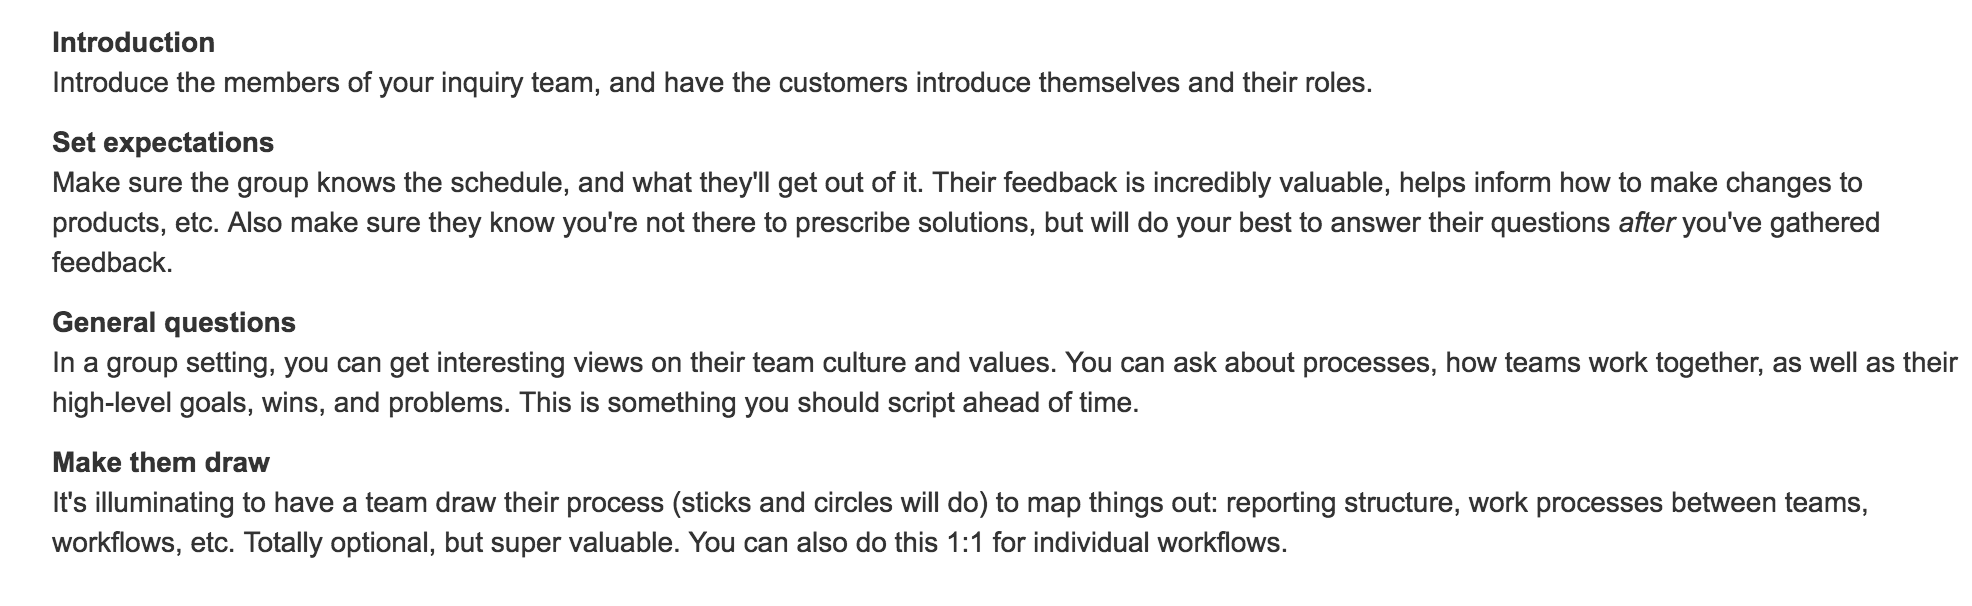 contextual inquiry know thy customer team playbook show me